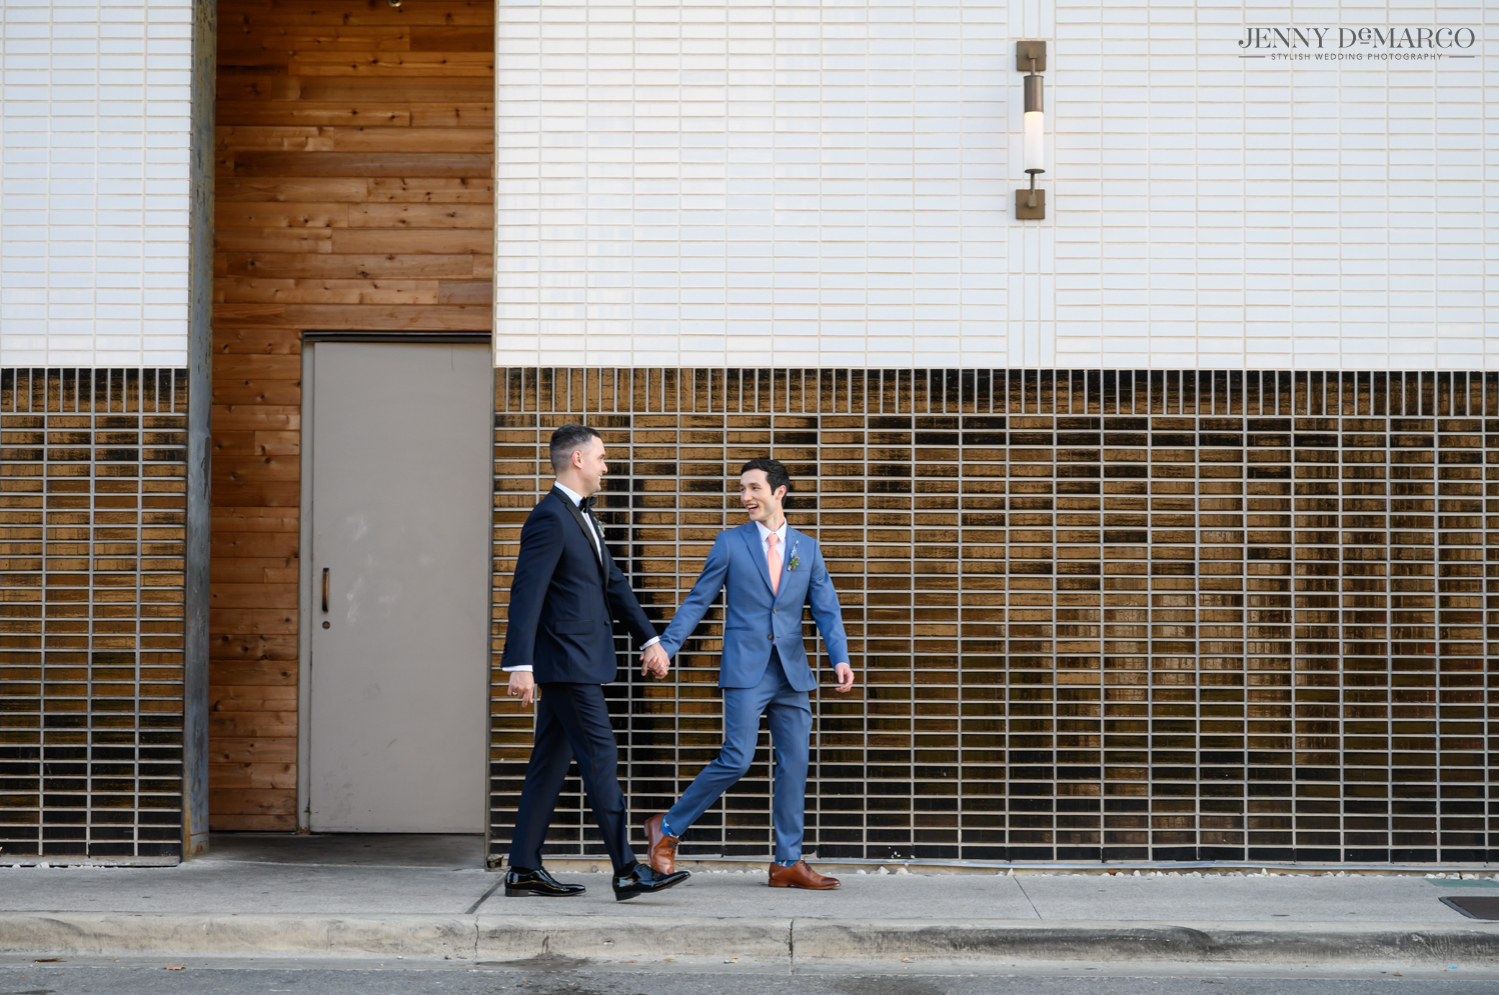 Grooms holding hands while walking on sidewalk and laughing